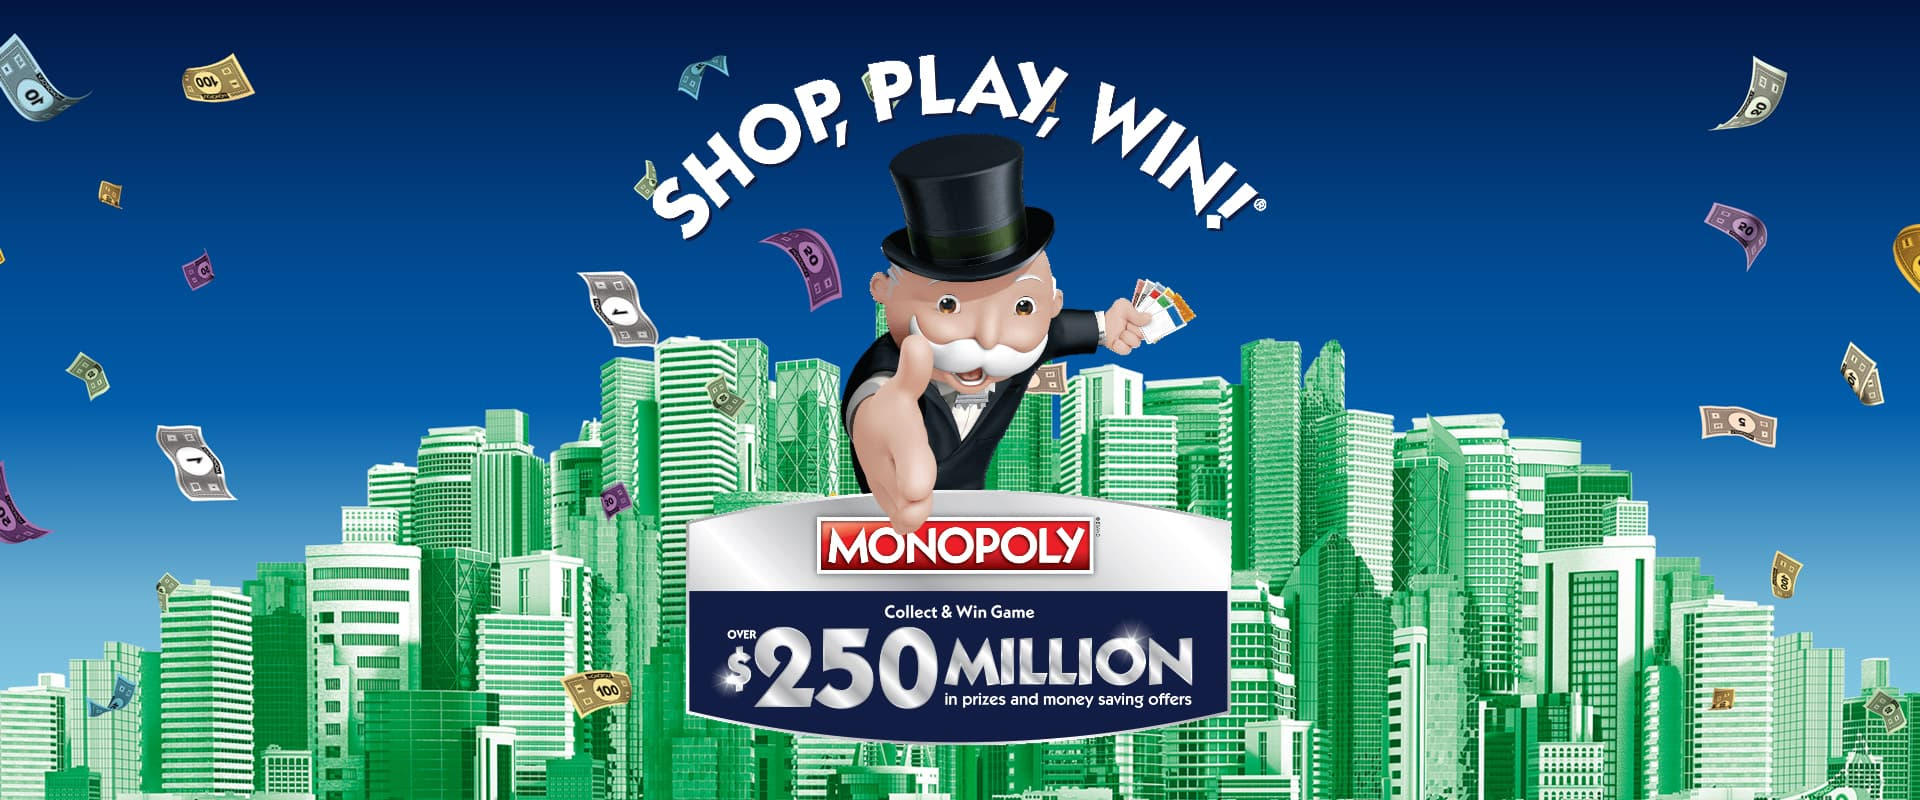 image relating to Albertsons Monopoly Game Board Printable titled Monopoly Safeway 2019 ) - Winzily